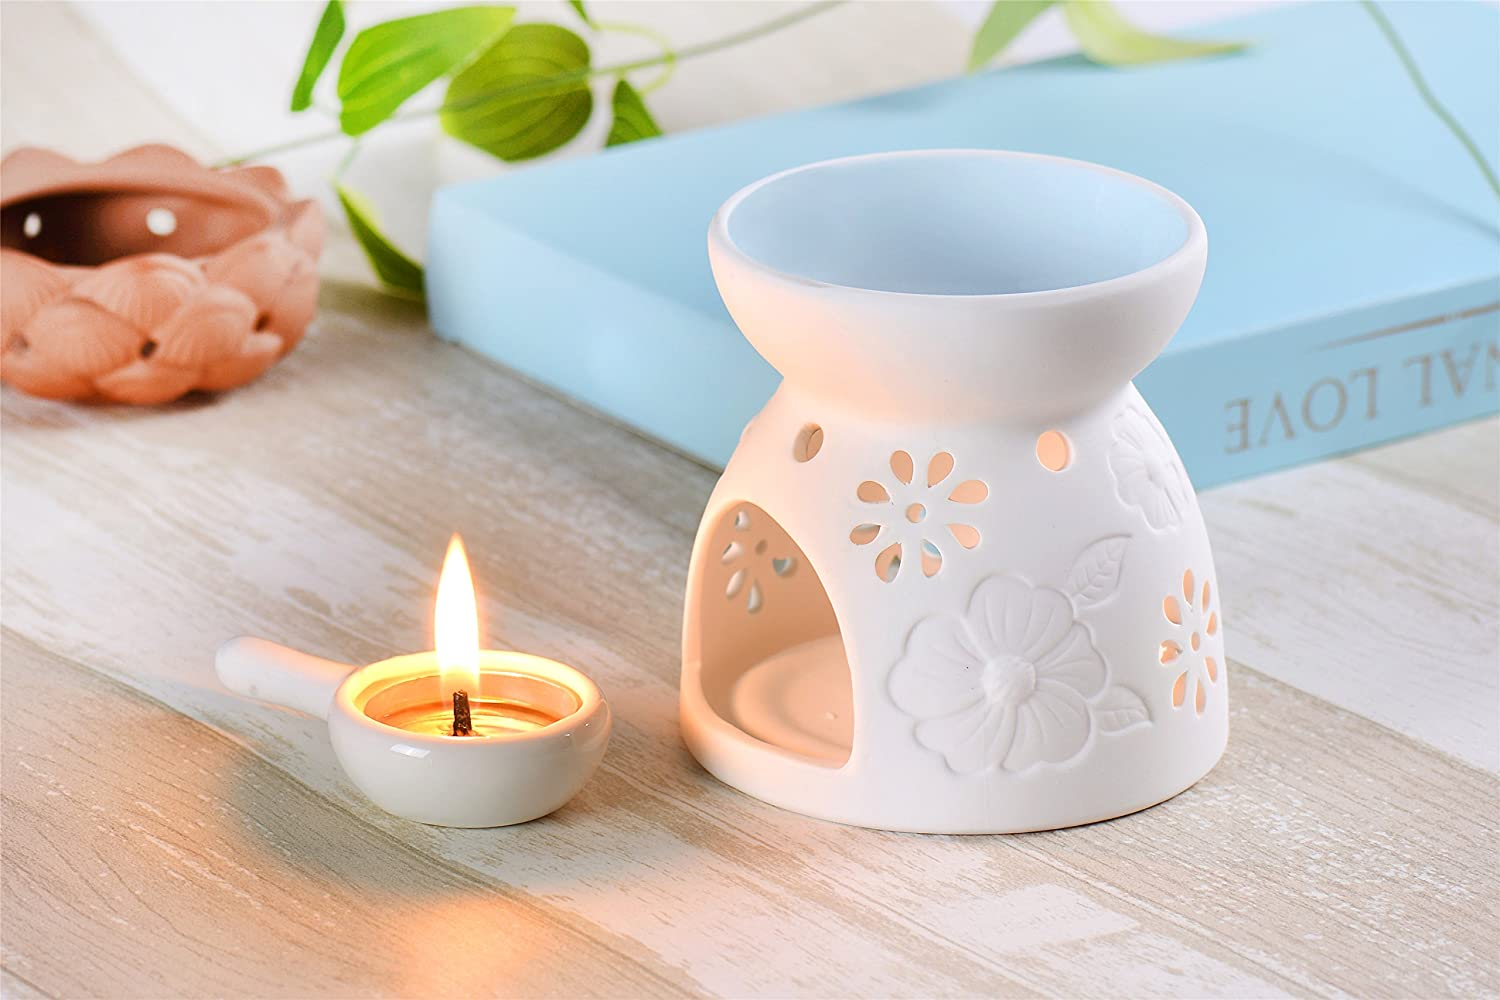 An essential oil burner is a great gift for your parents at Christmas